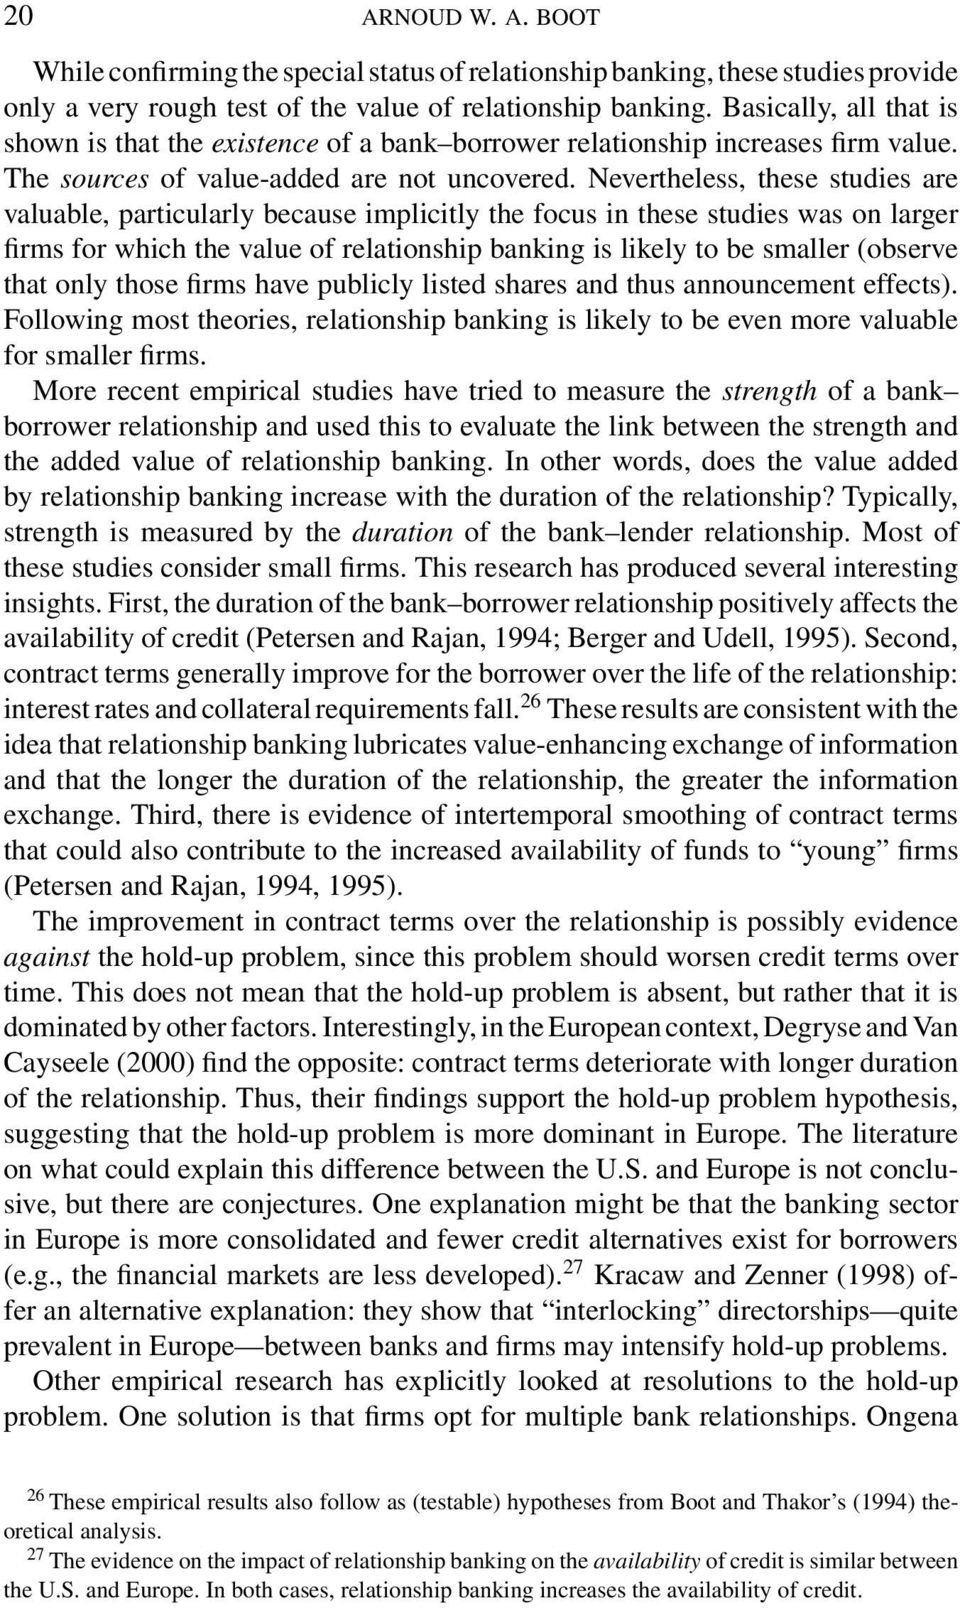 Nevertheless, these studies are valuable, particularly because implicitly the focus in these studies was on larger firms for which the value of relationship banking is likely to be smaller (observe